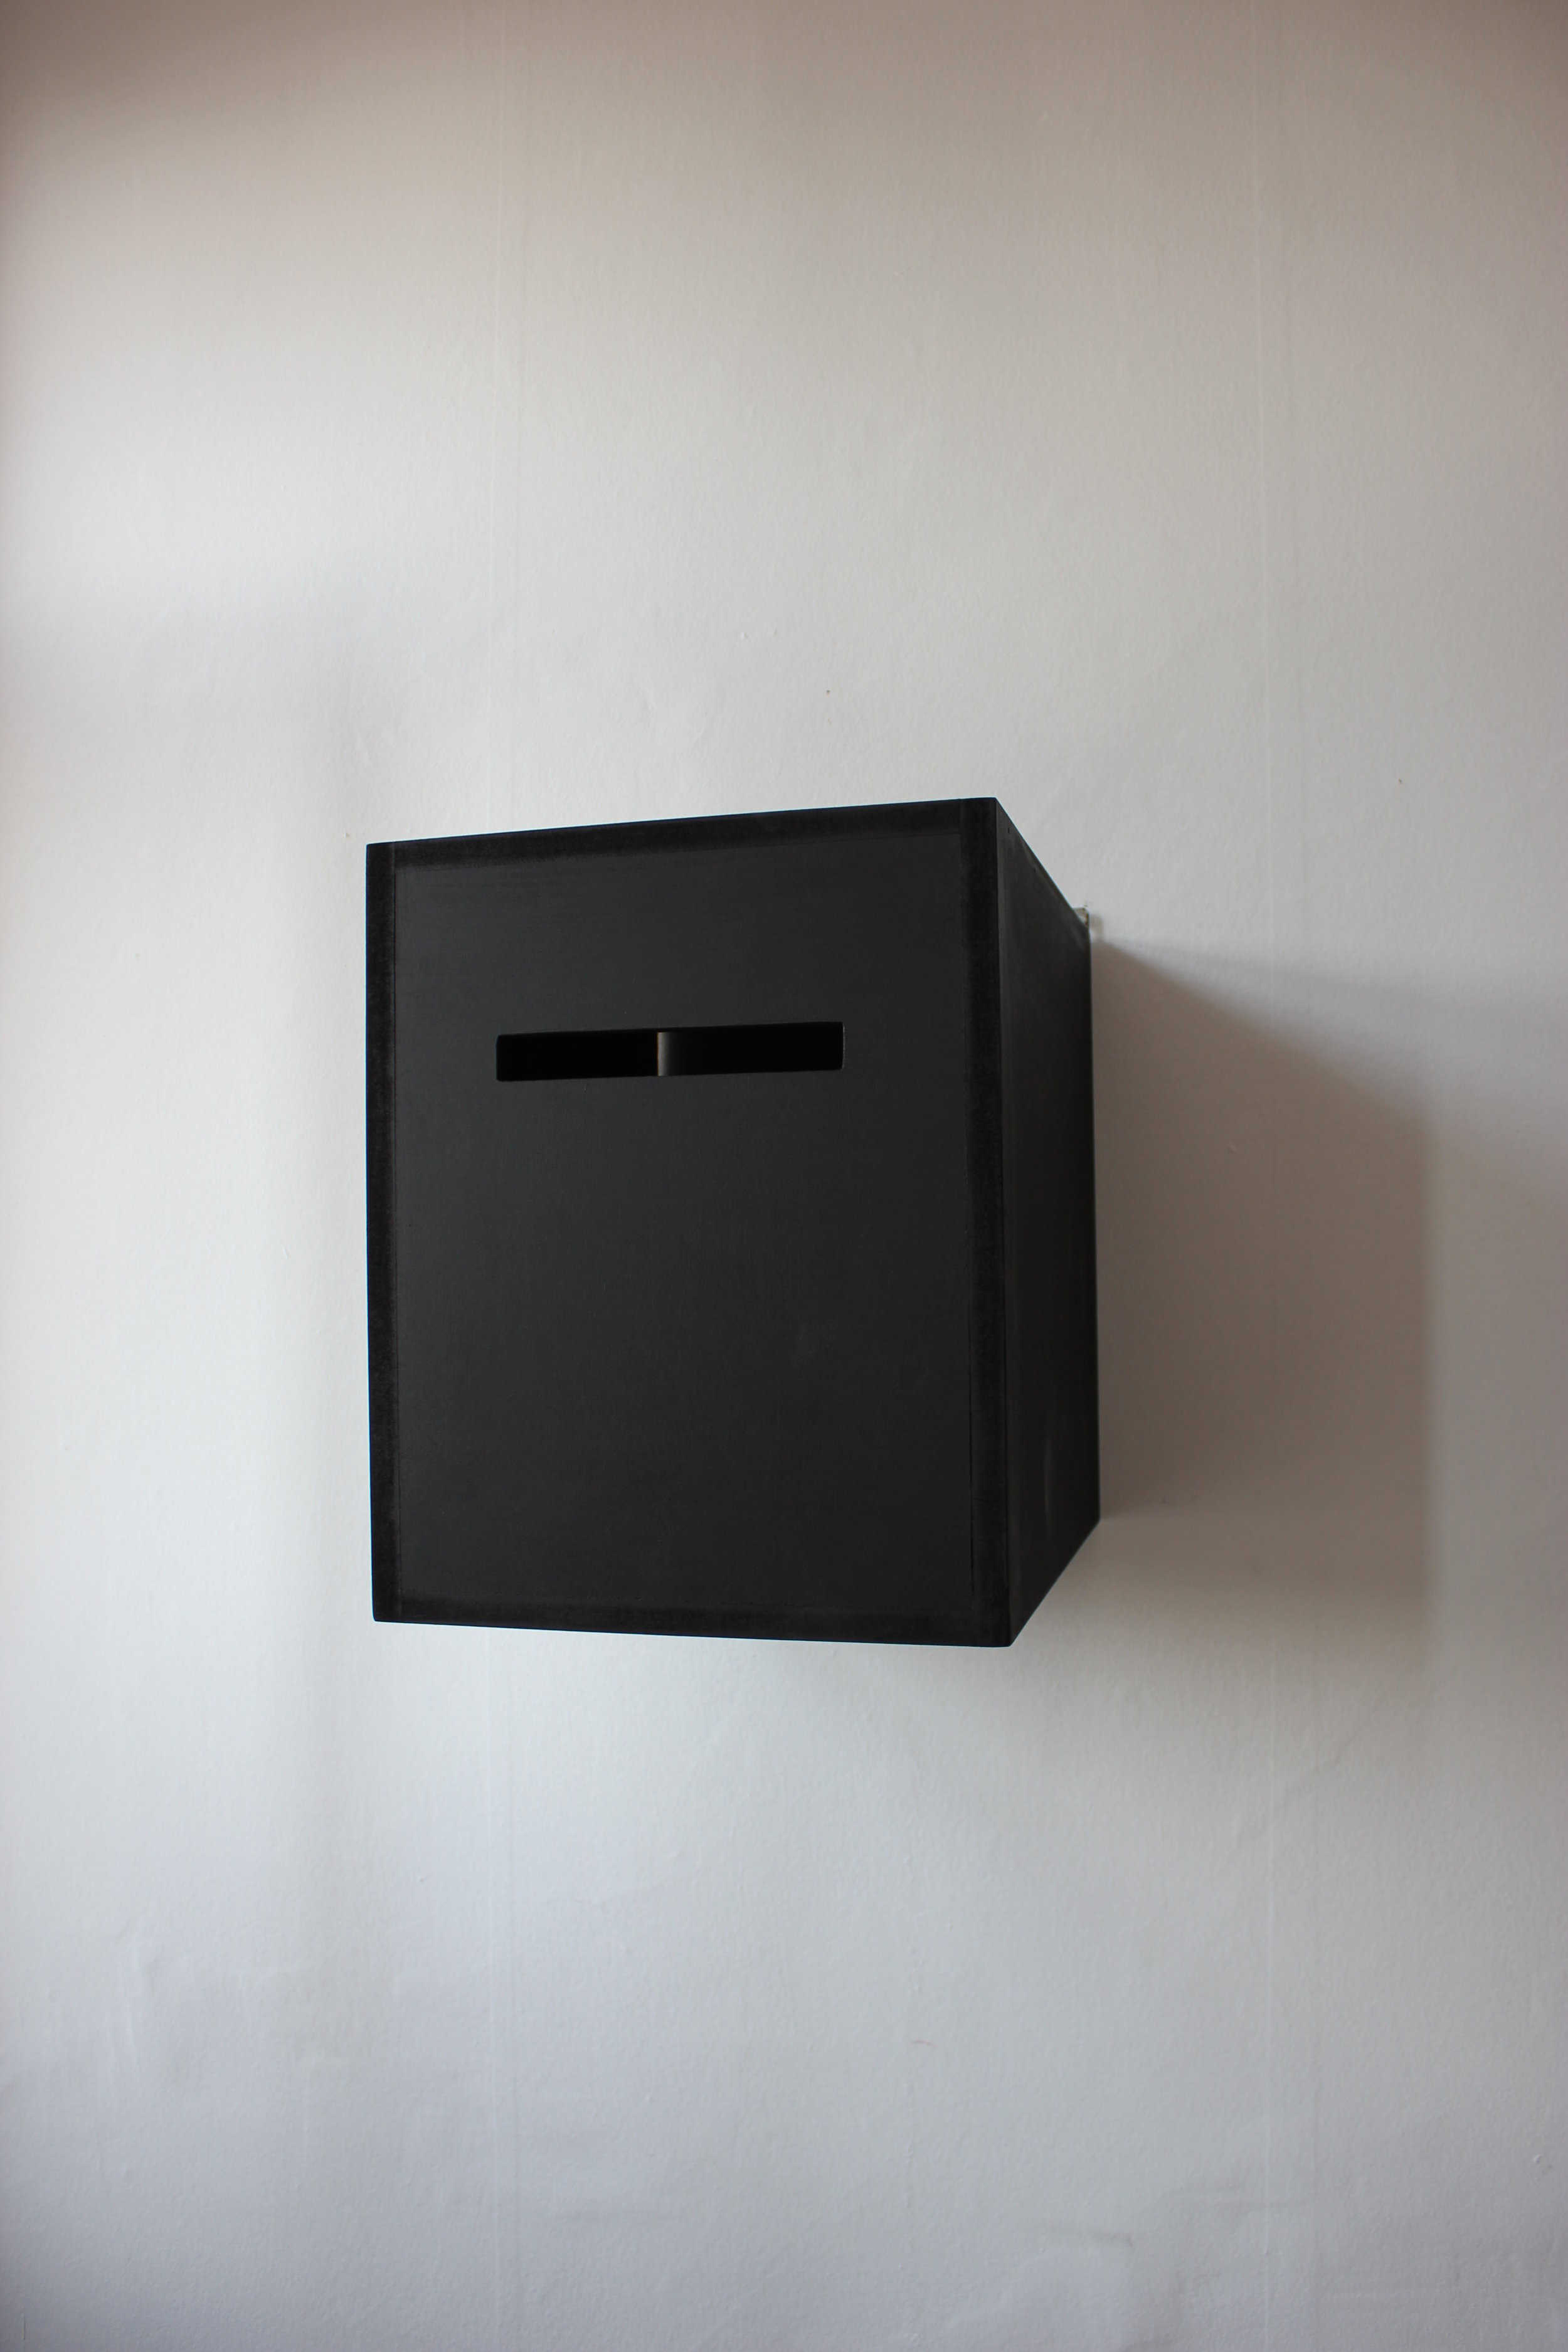 Box of smiling eyes, 2014.  31x38x40 cm  Closed painted wooden box with a small peephole to look inside the box and see your own eyes reflecting in a mirror and the word SMILE.